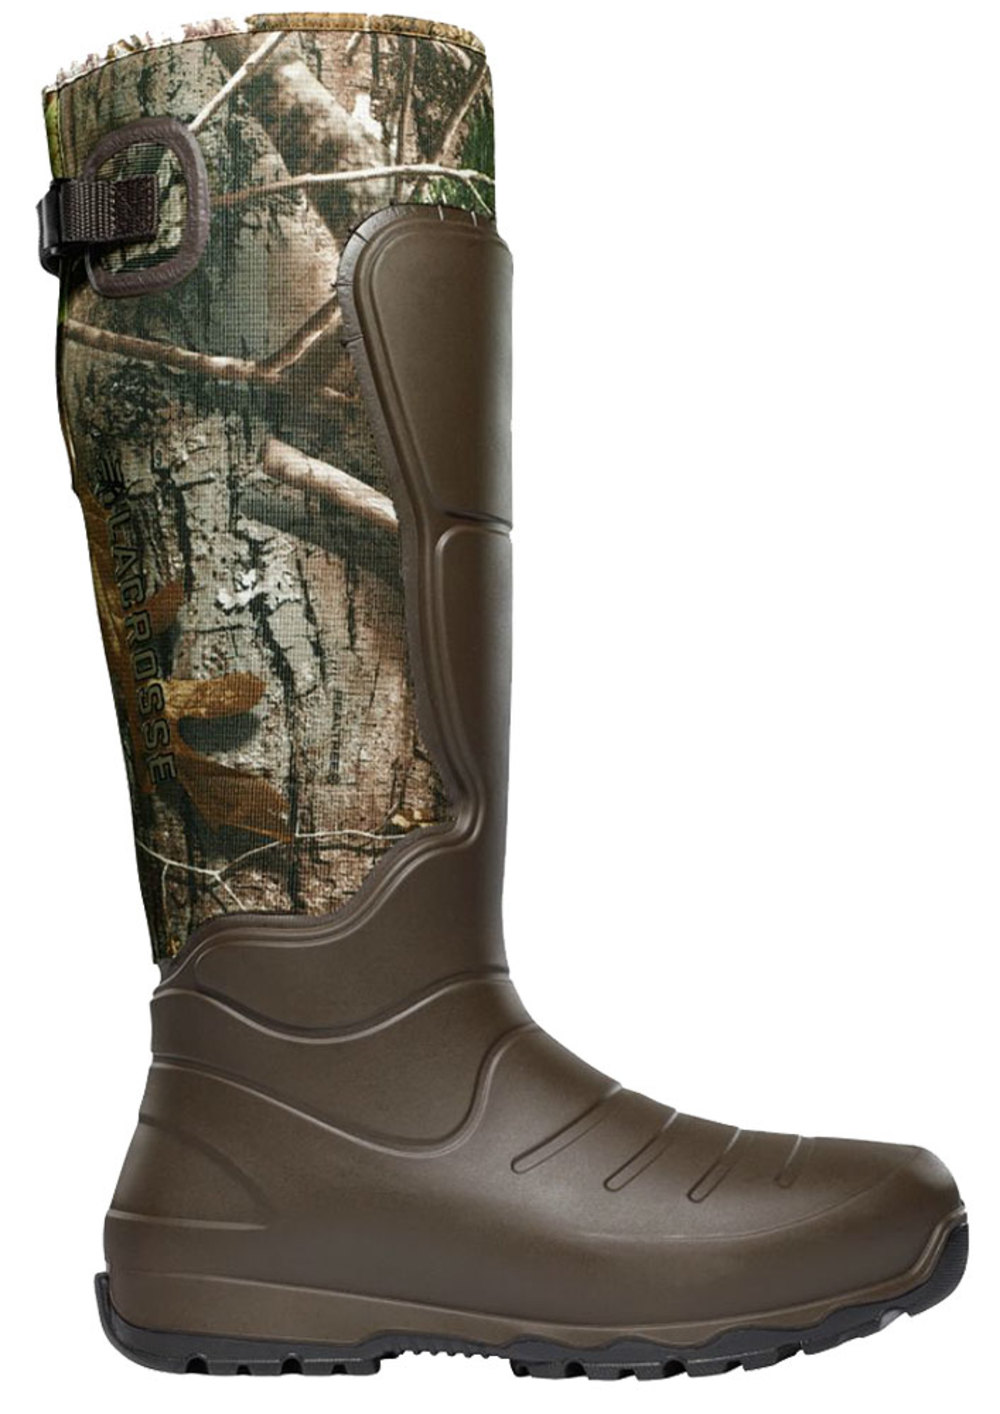 LaCrosse AeroHead Boot Realtree Xtra 7mm 8 by LACROSSE